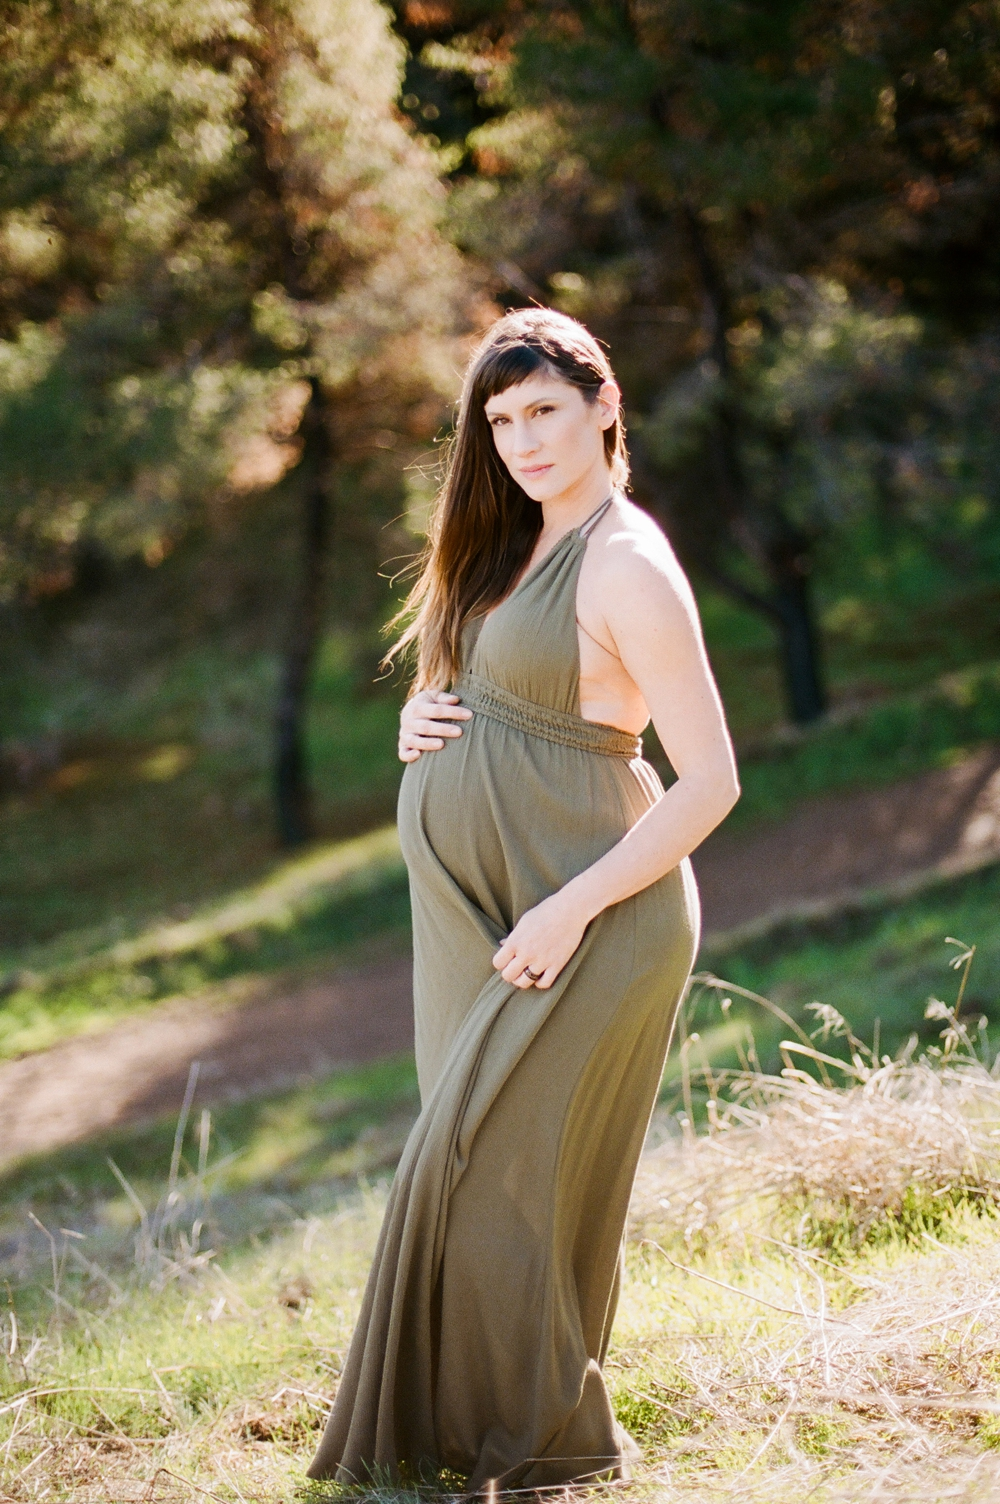 bonelli park maternity czar goss photo hope and aron 2.jpg